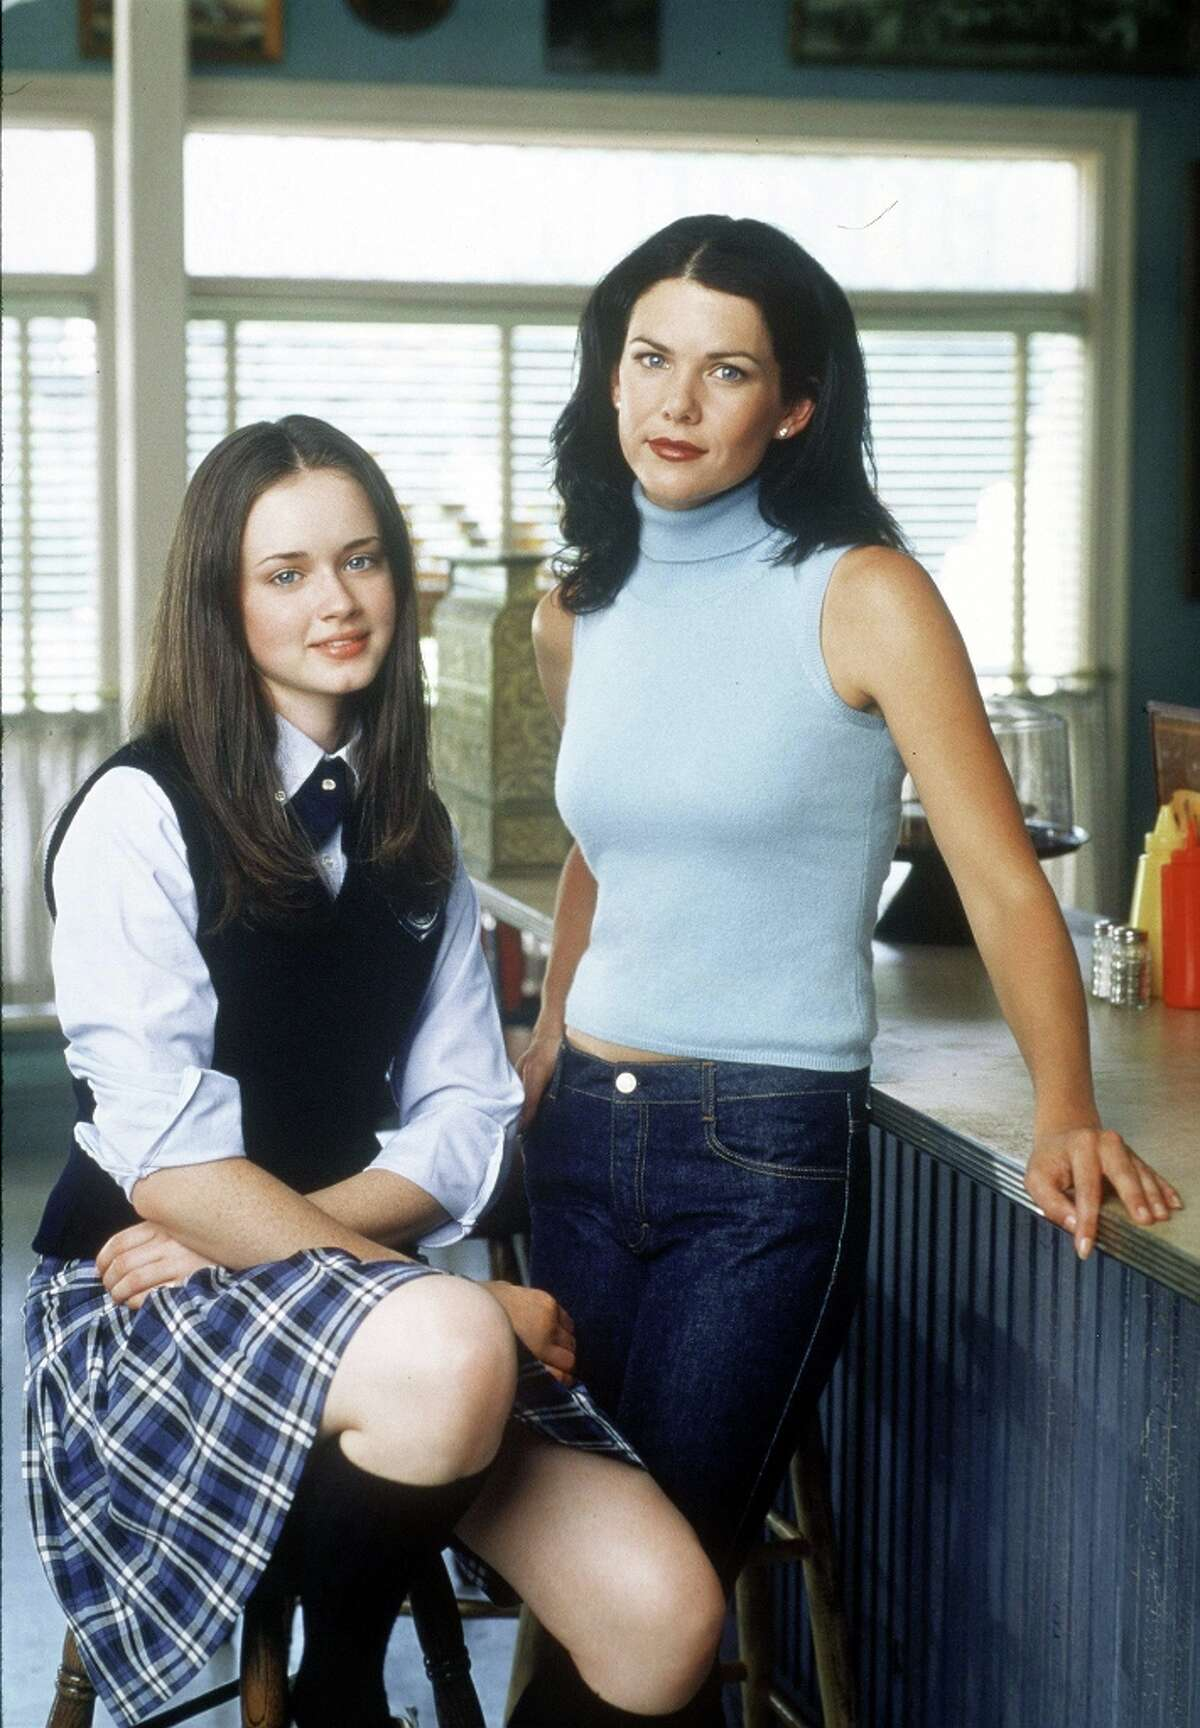 Alexis Bledel starred in 'The Gilmore Girls.' She's pictured with Lauren Graham. The festival has gone on ever since, though it moved to Kent. But this year, the festival will require no travel at all as it has pivoted to a virtual format during the pandemic. The 2020 festival will take place online Oct. 16 - 17 with a full schedule of events lined up, including a drawing class with a local Kent artist and a chats with the creators of the show. Tickets are $35.